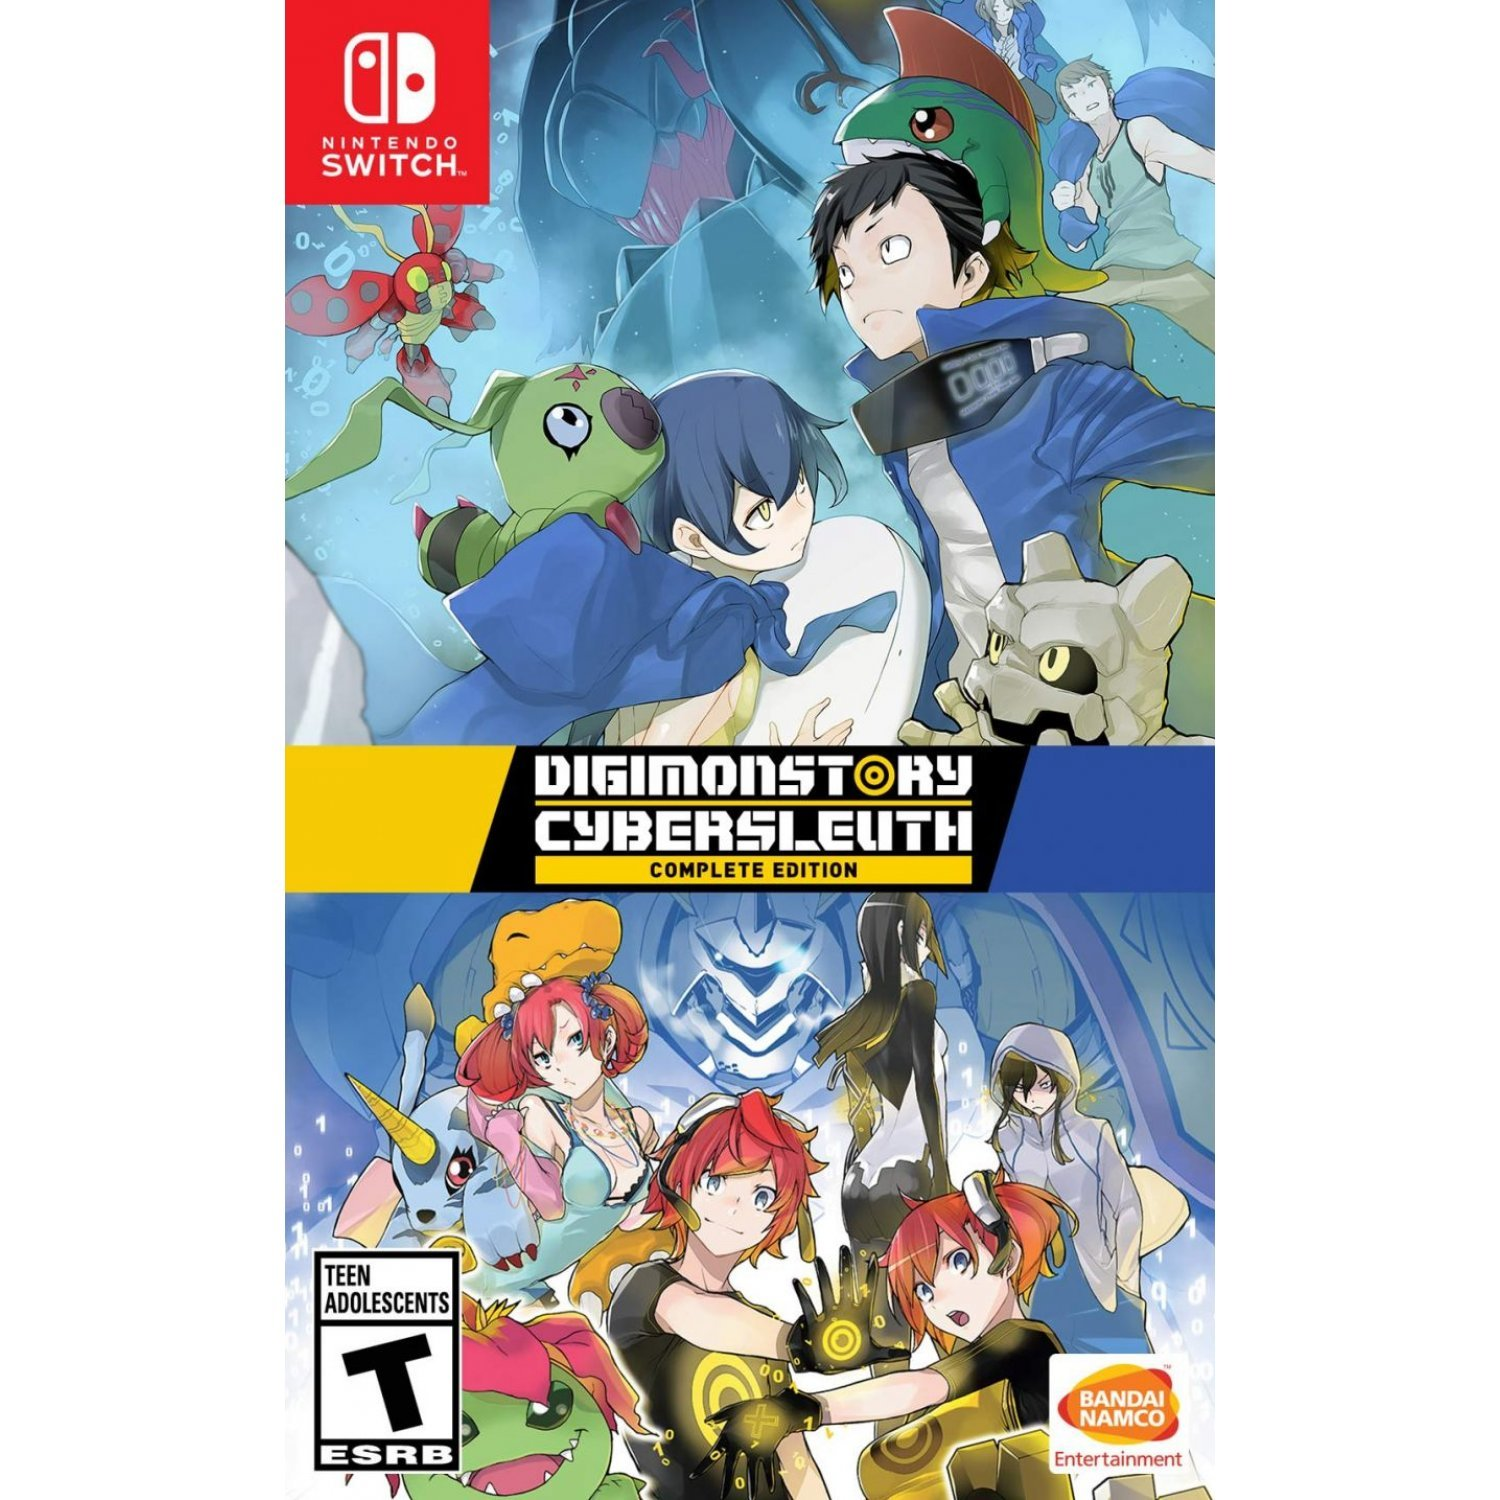 digimon-story-cyber-sleuth-complete-edition-english-subs-601891.1.jpg